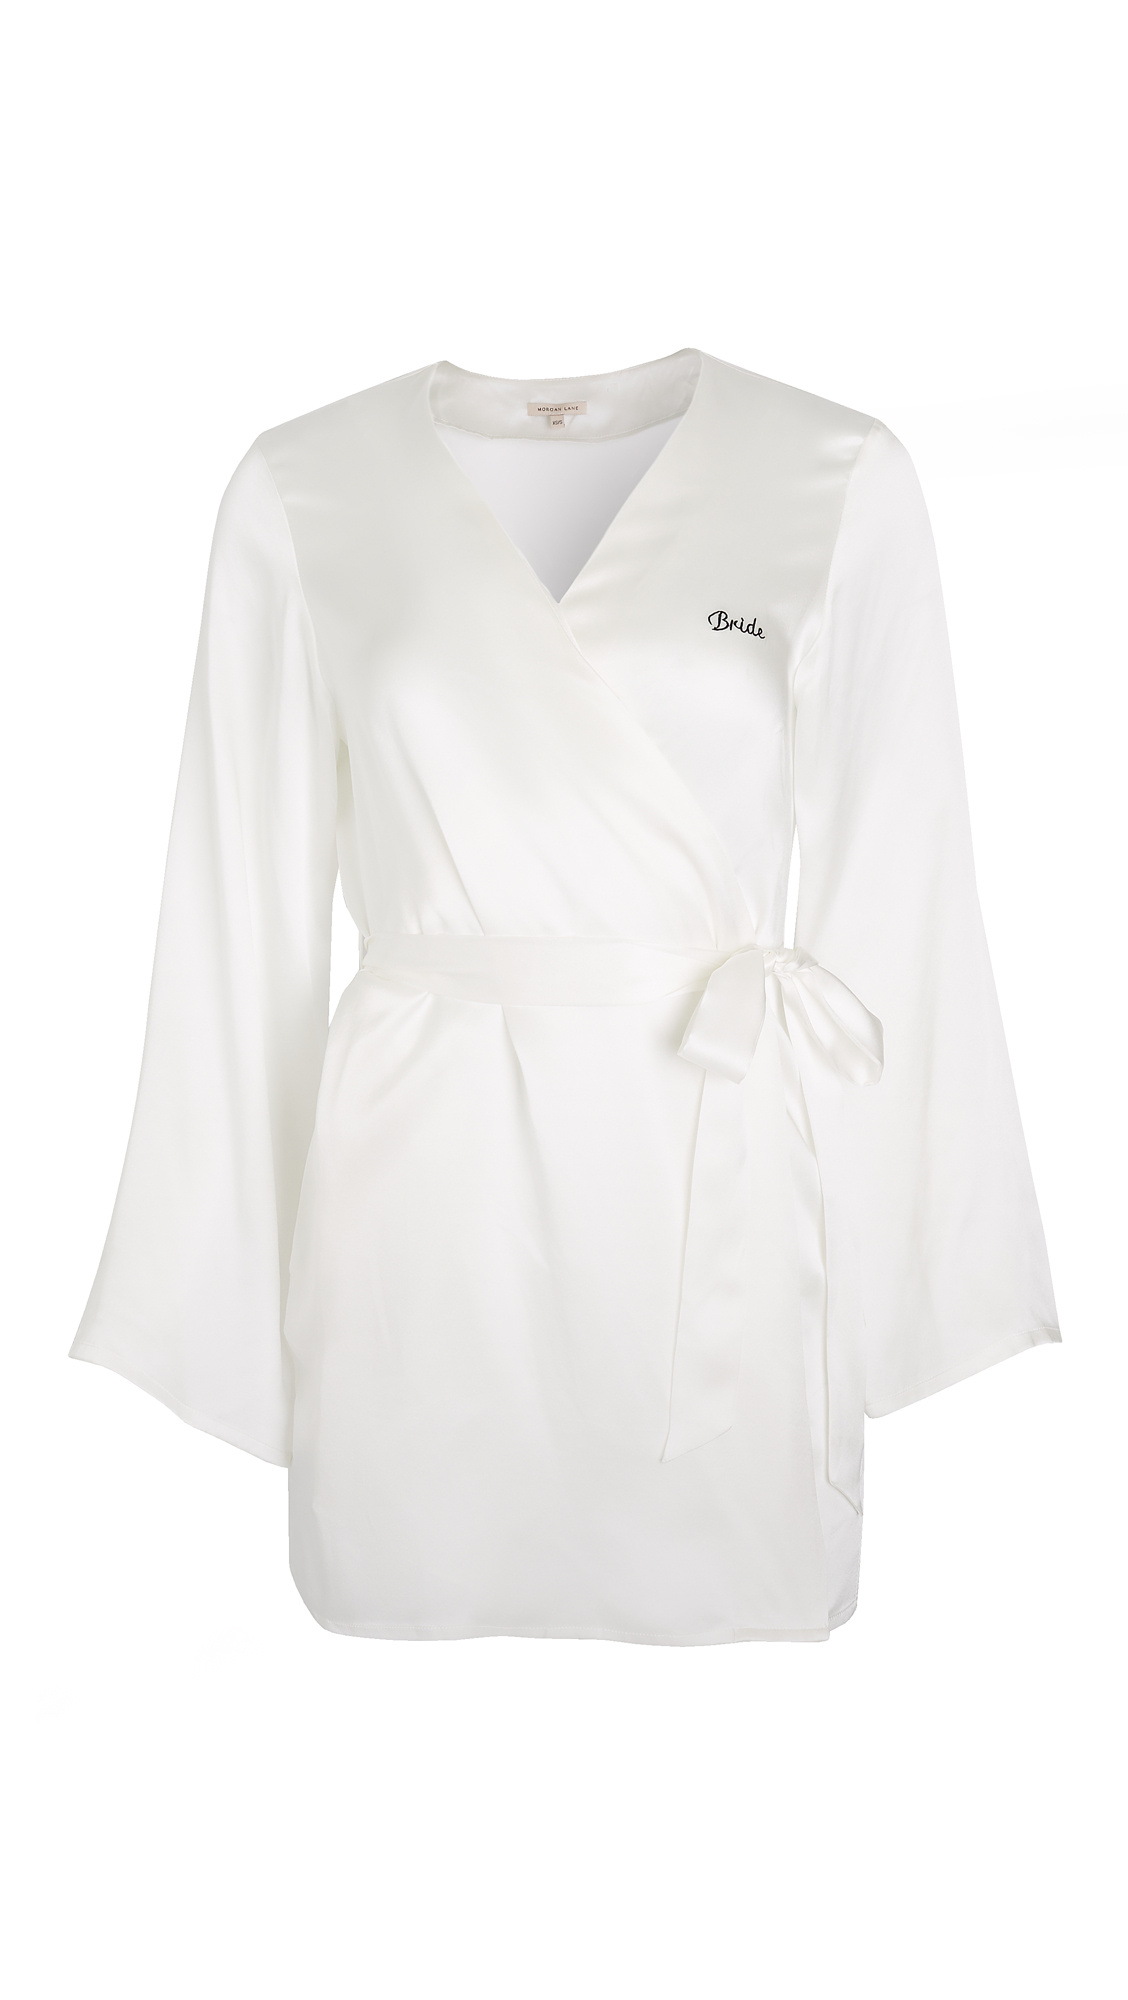 Morgan Lane Bride Robe